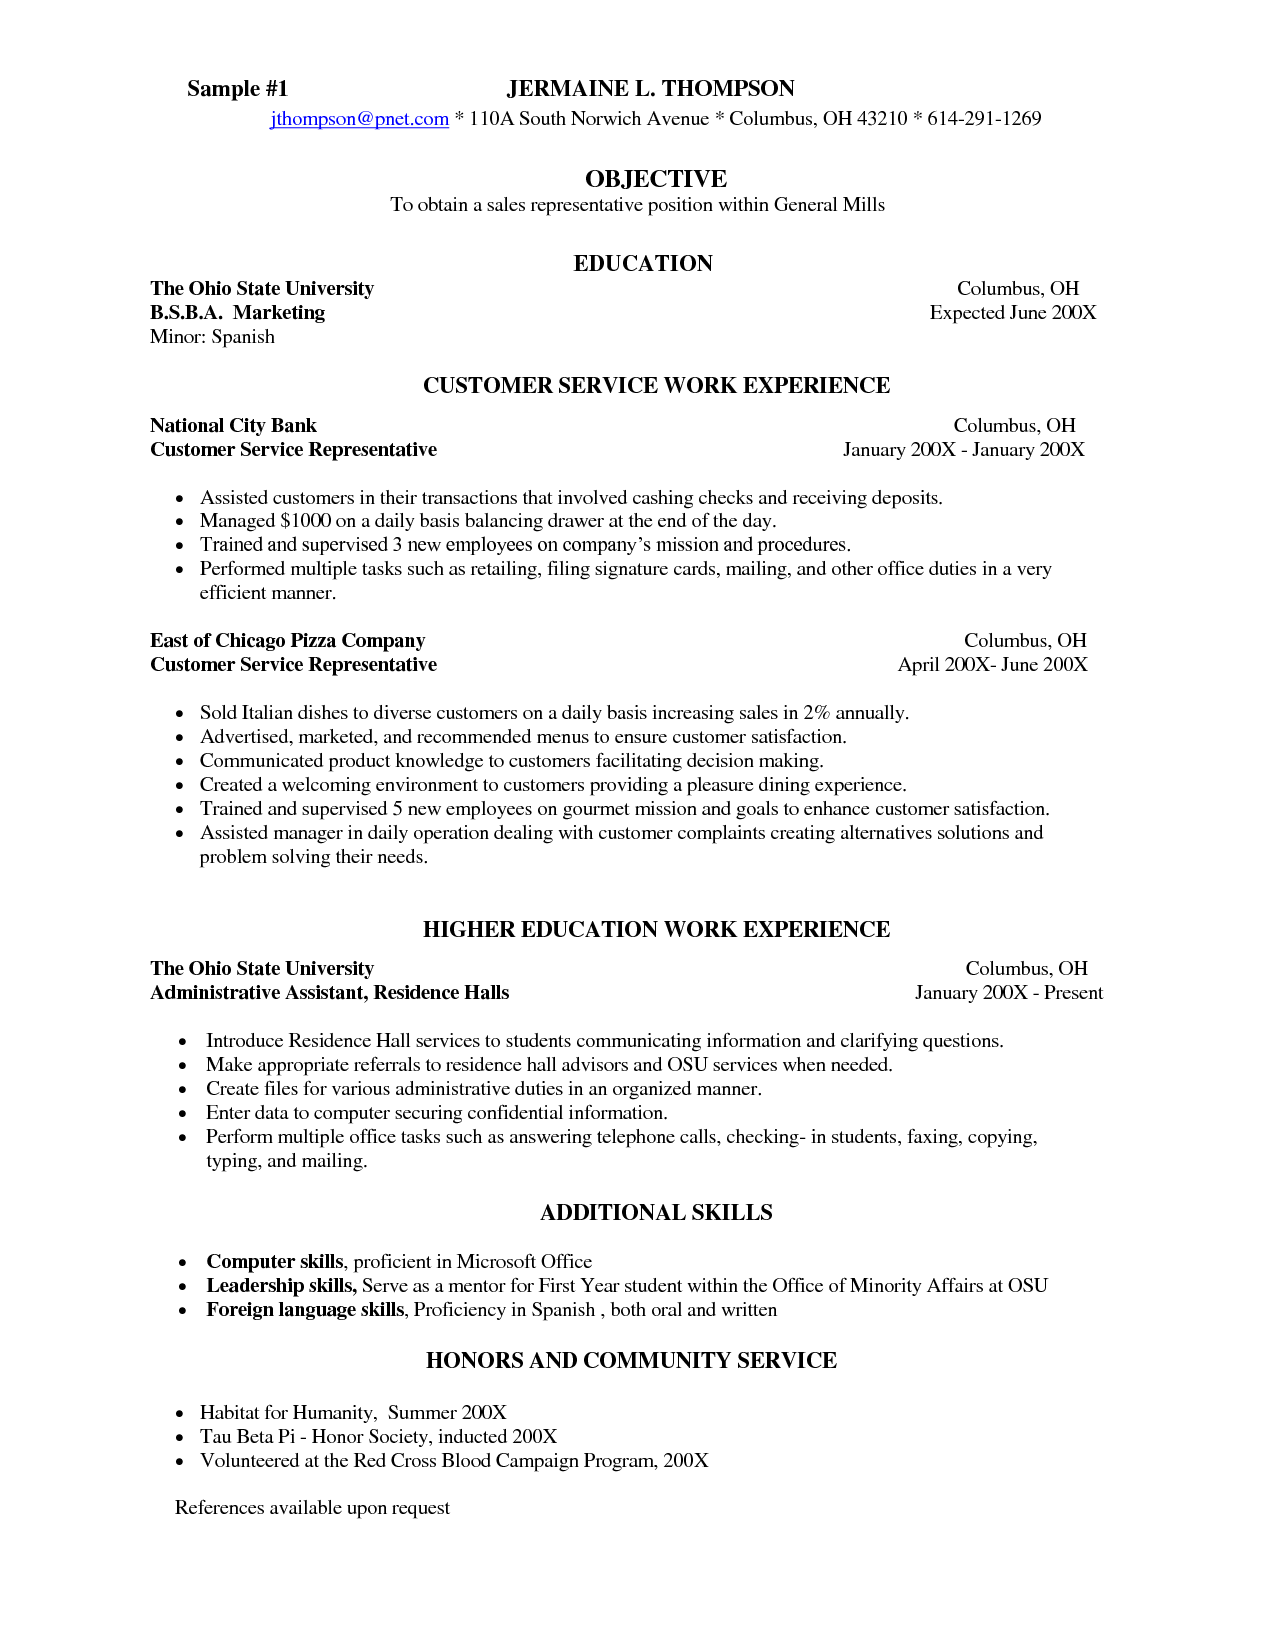 server job description resume samples - Gecce.tackletarts.co